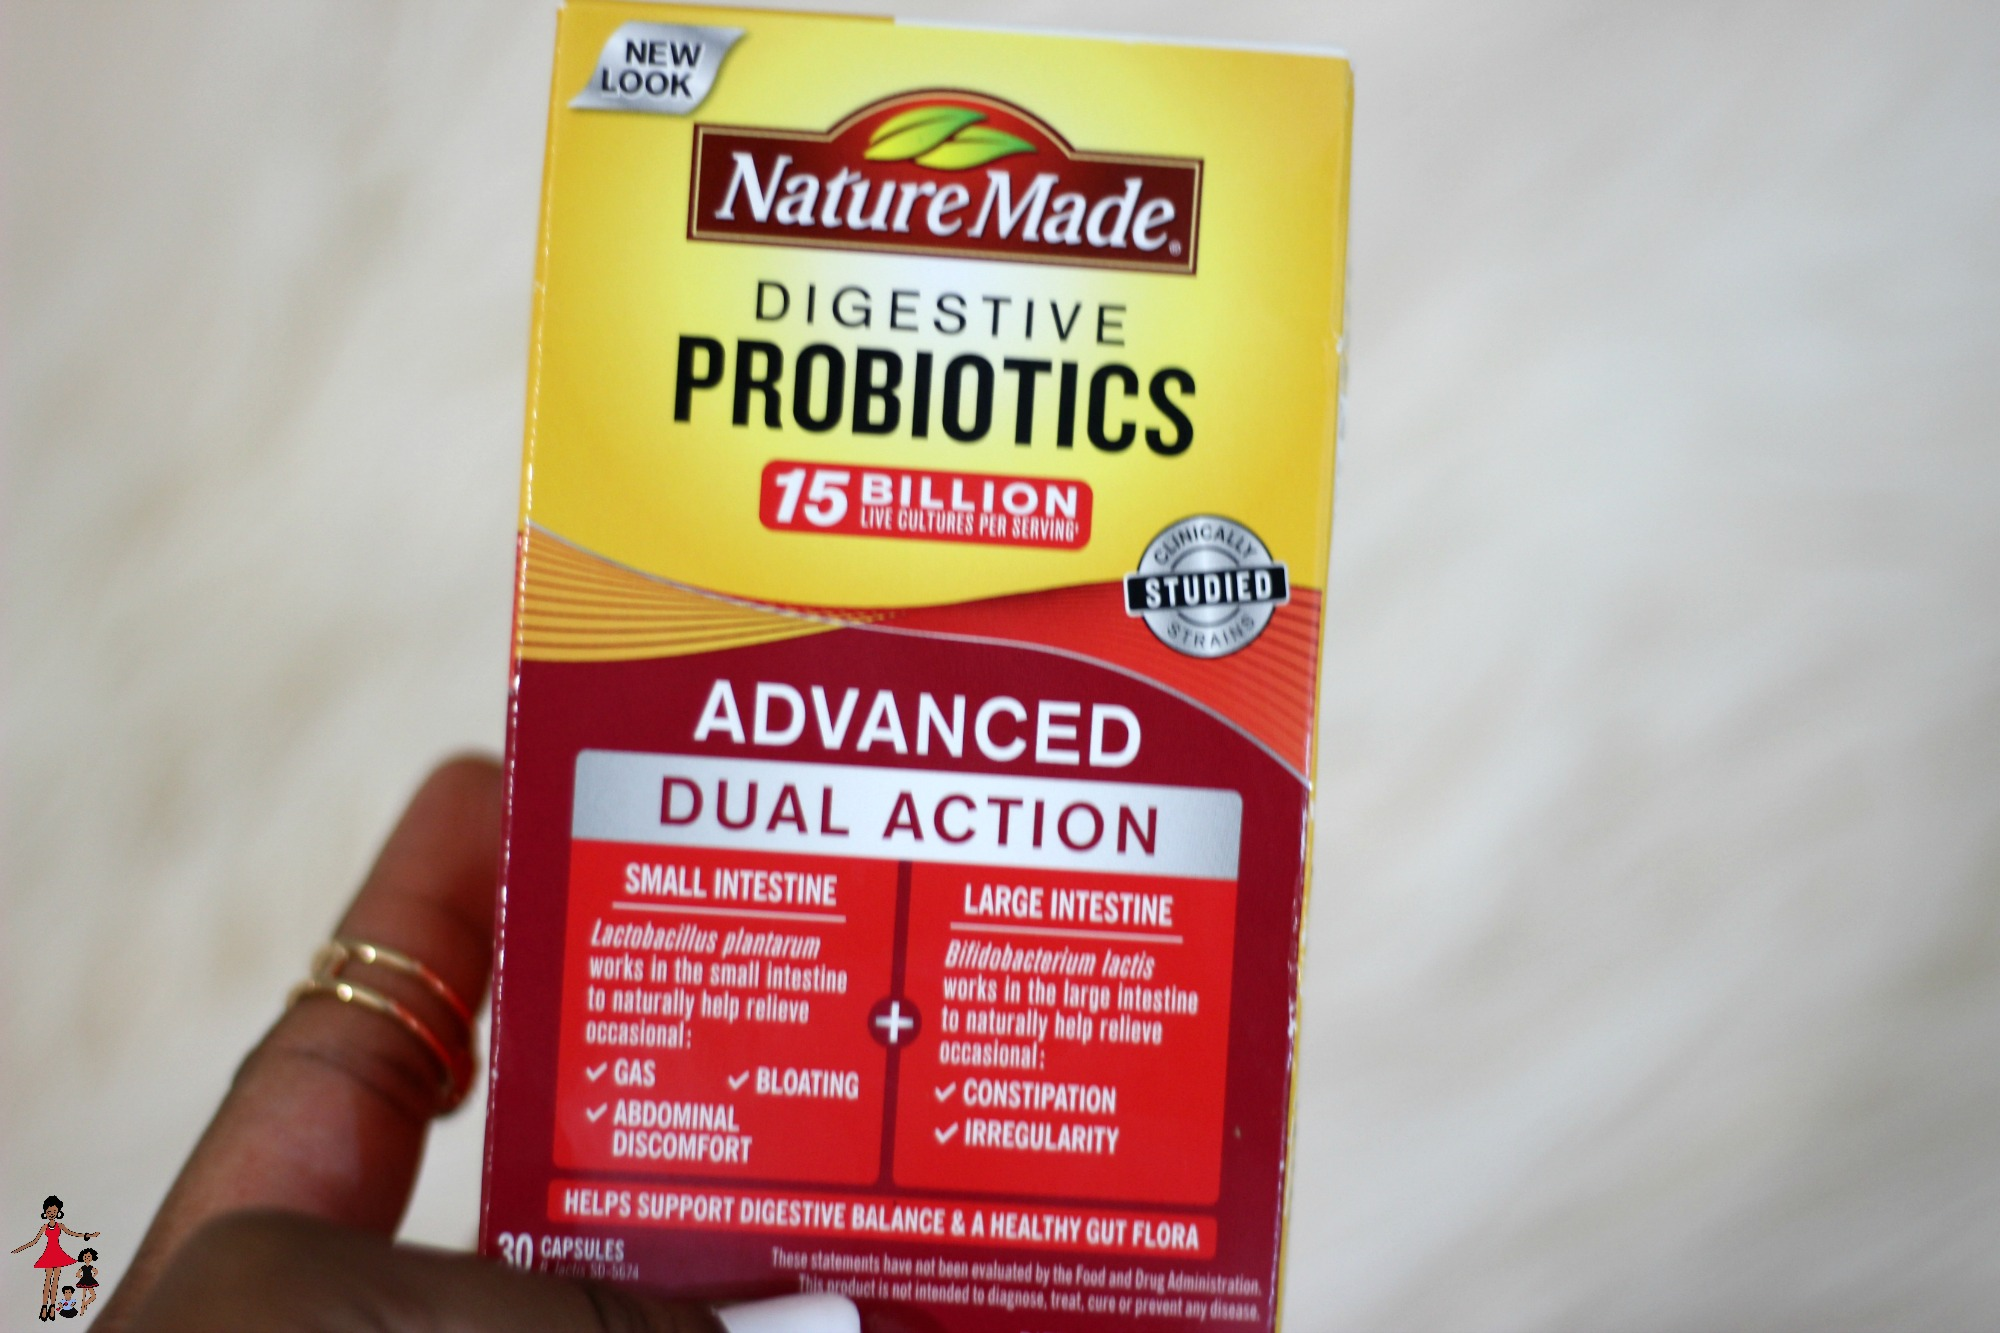 naturemade-probiotics